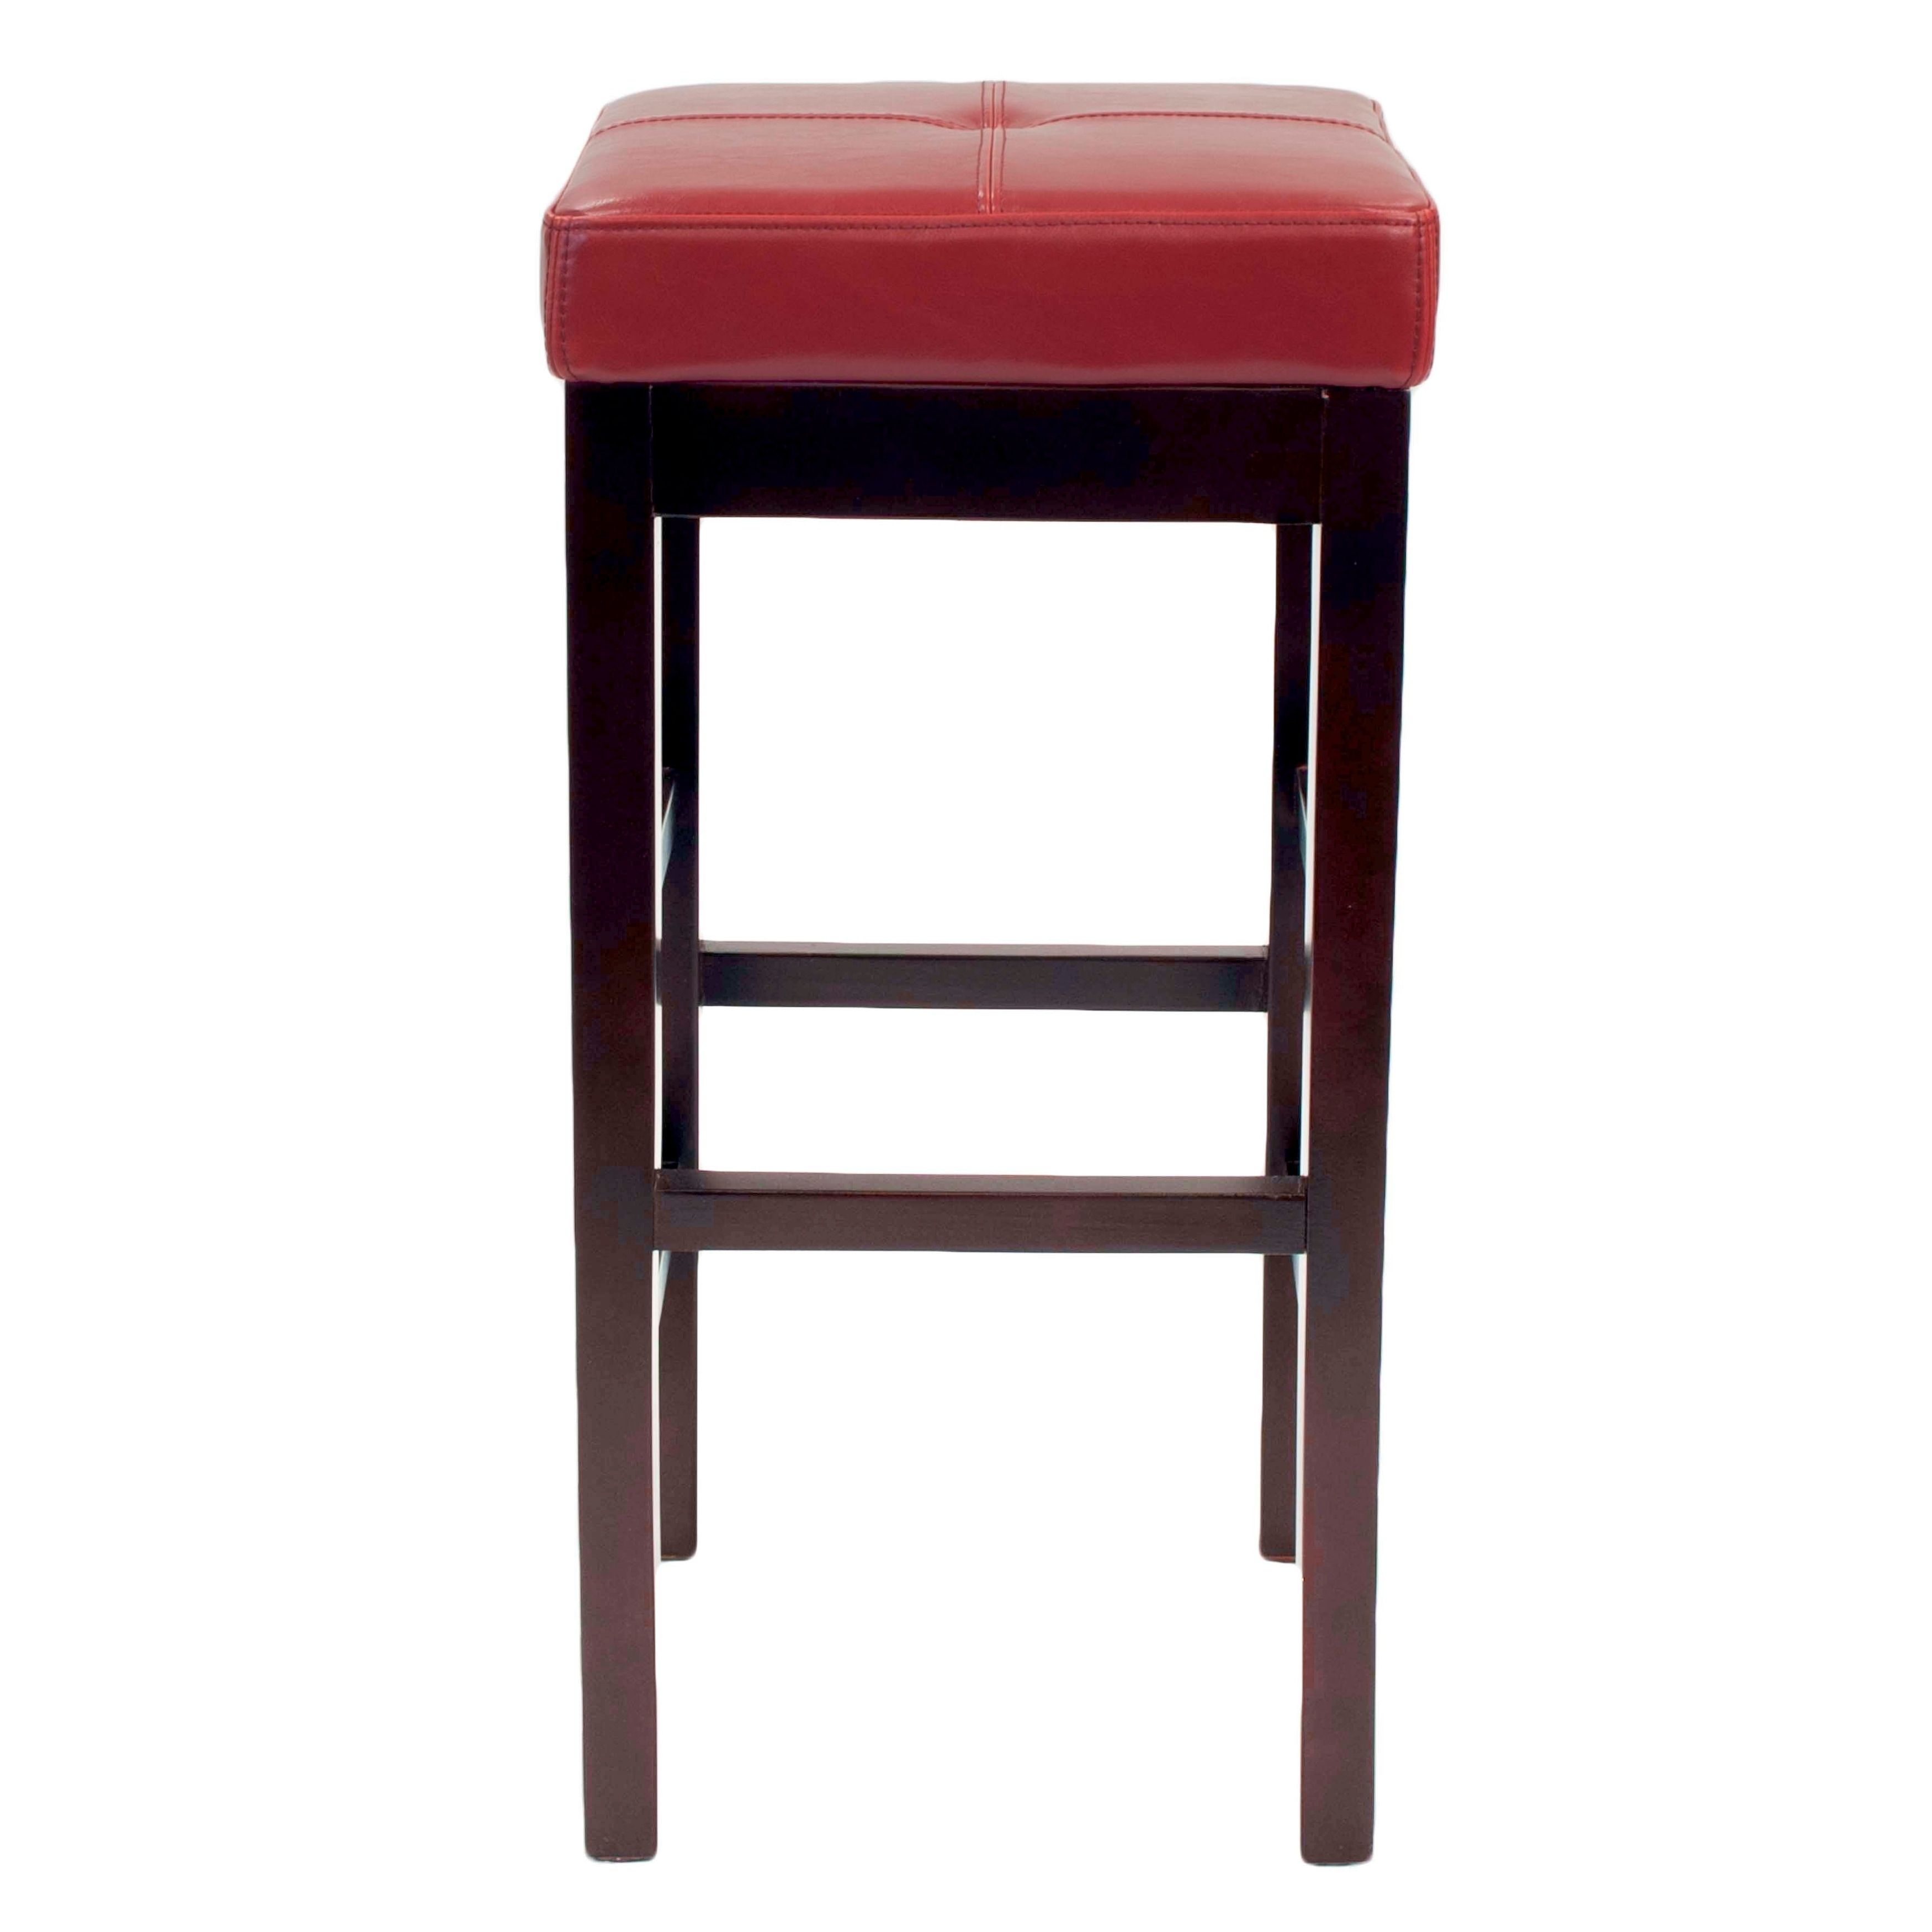 Outstanding Copper Grove Pennyrile Backless Leather Counter Stool Red Gmtry Best Dining Table And Chair Ideas Images Gmtryco